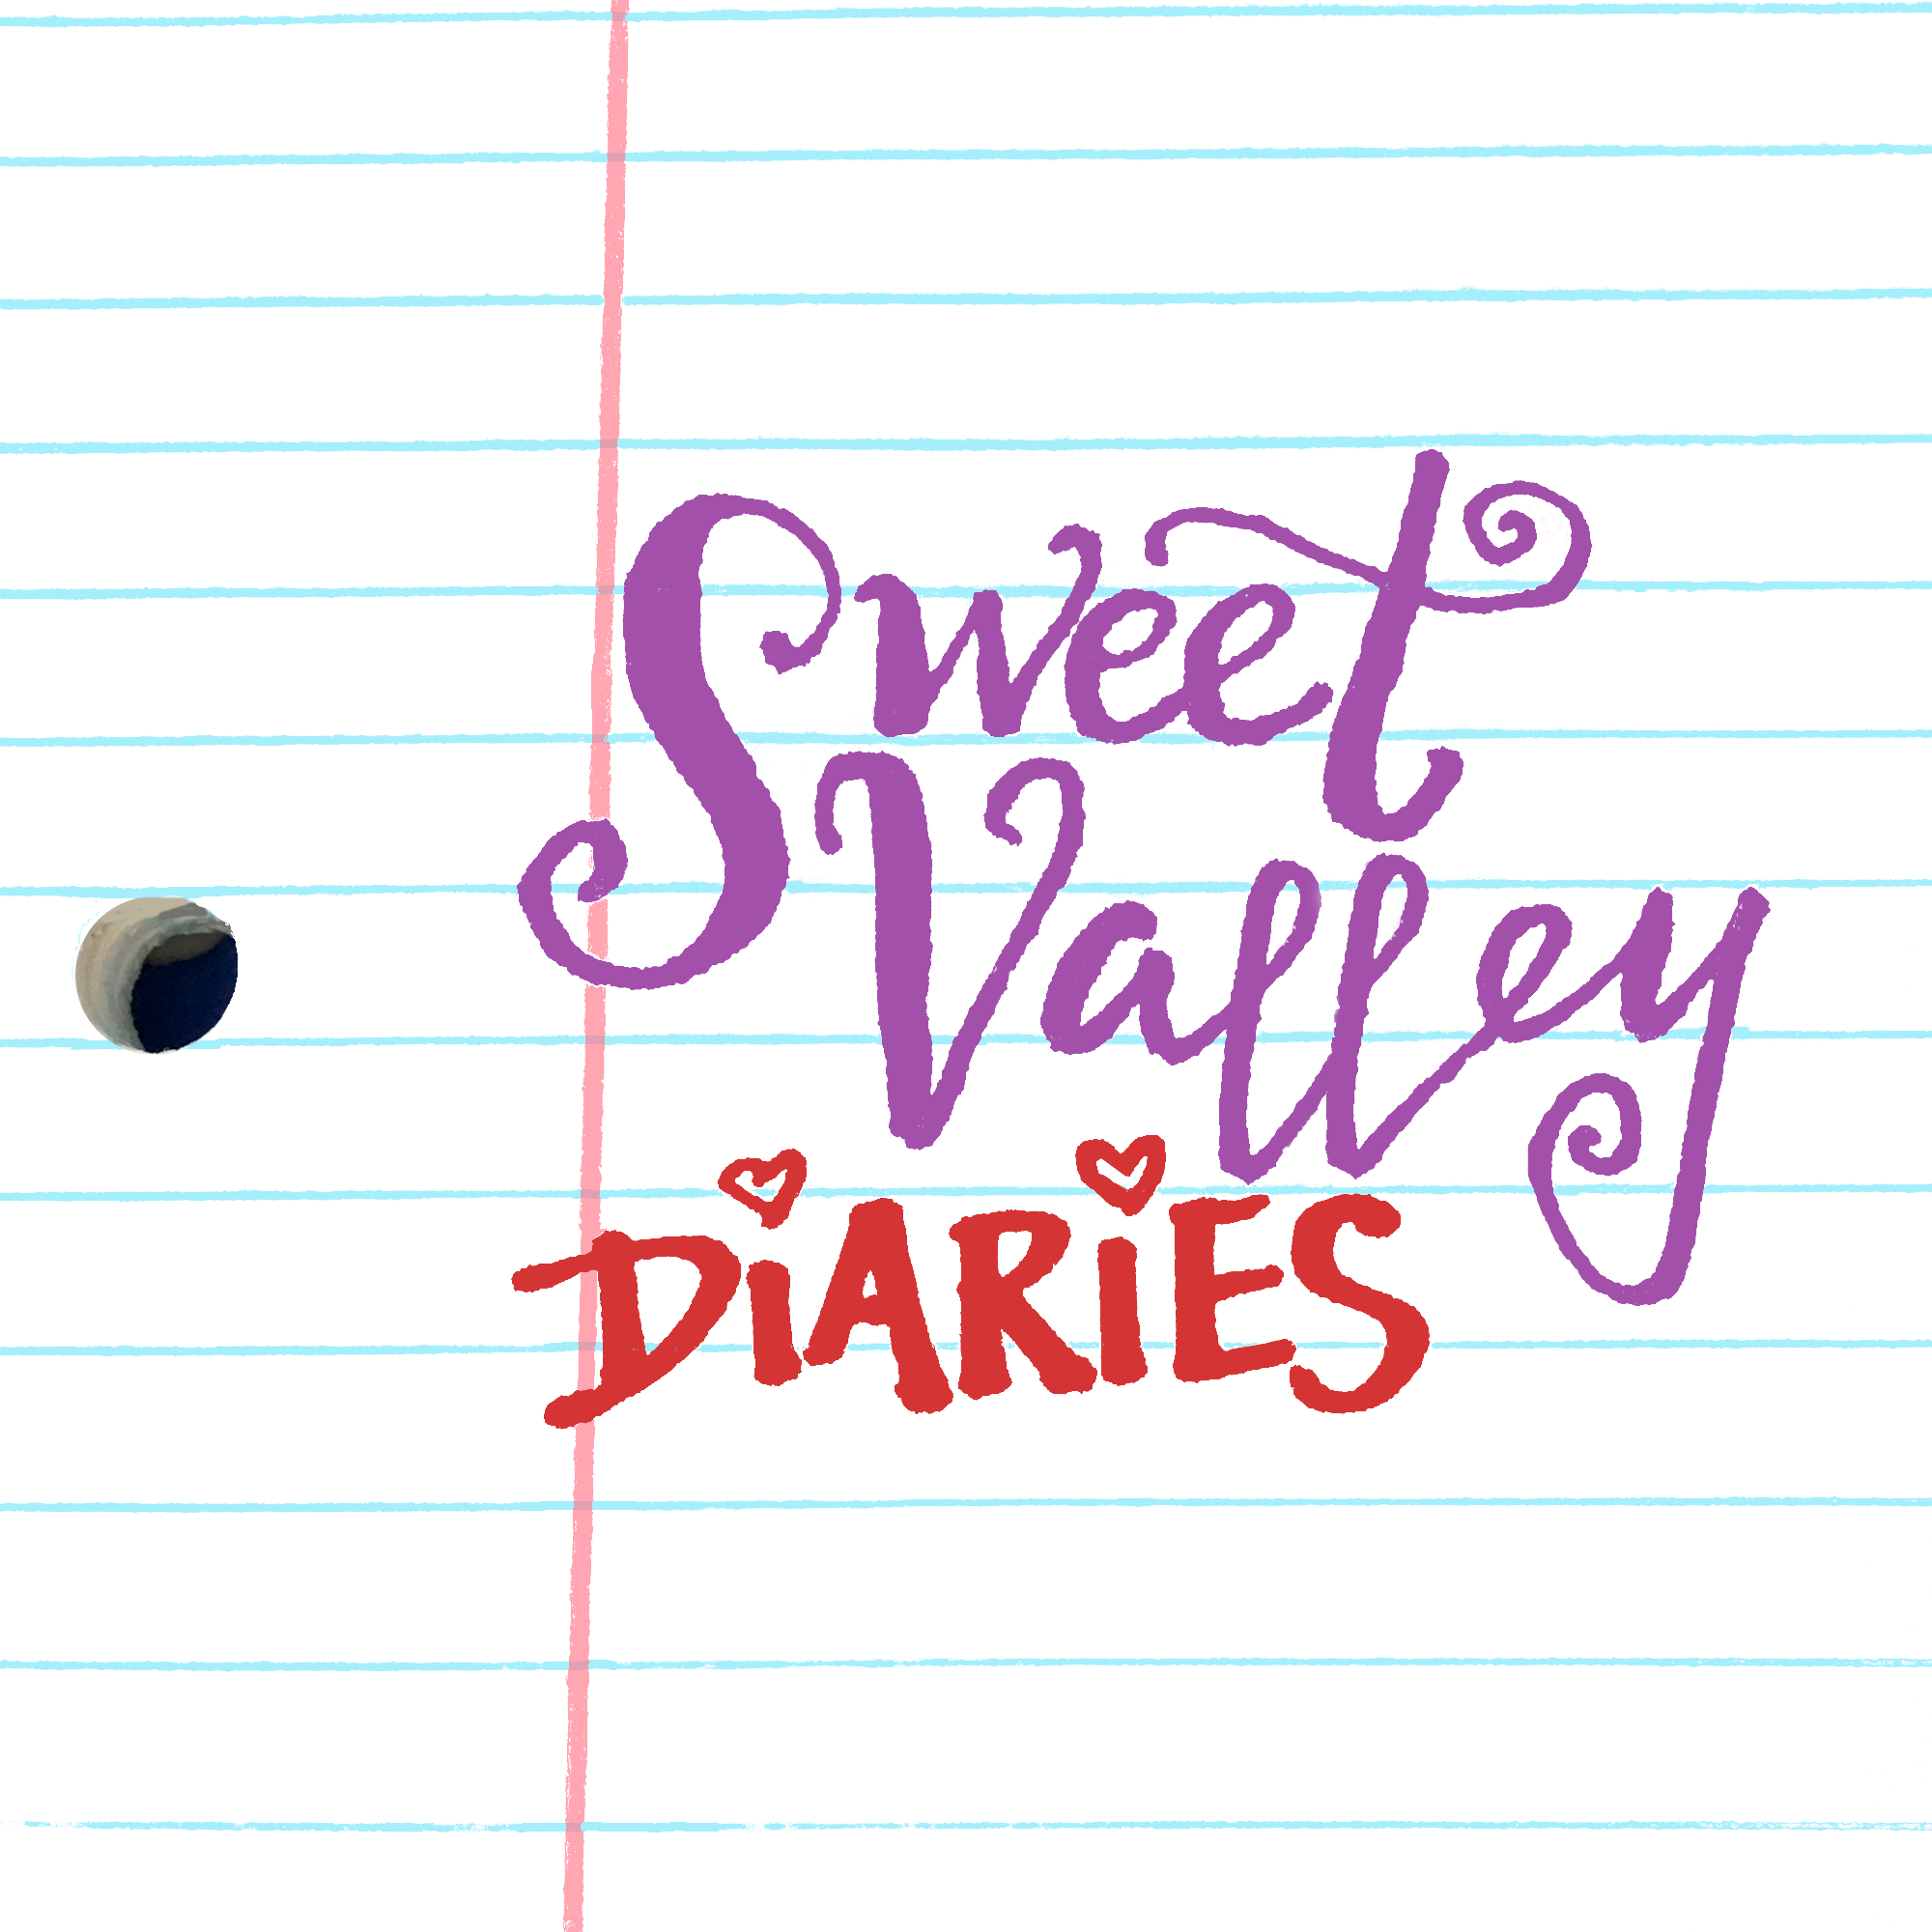 Sweet Valley Diaries show art